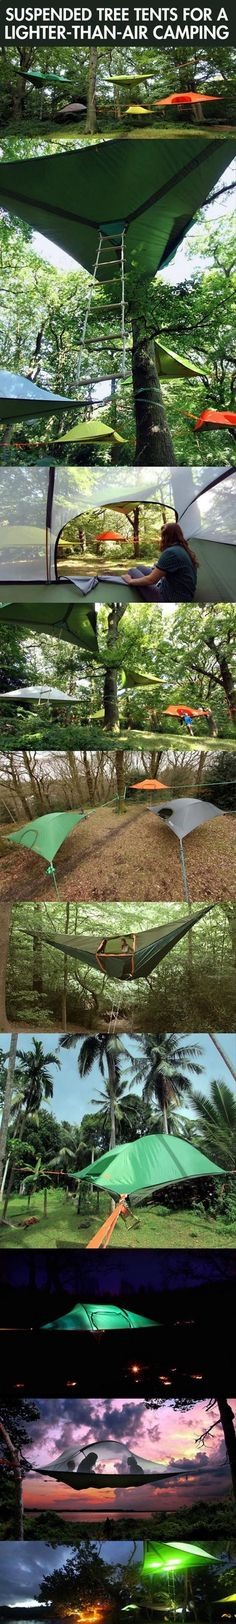 Tree tents....very cool very weird very interesting. What the hell supports your butt